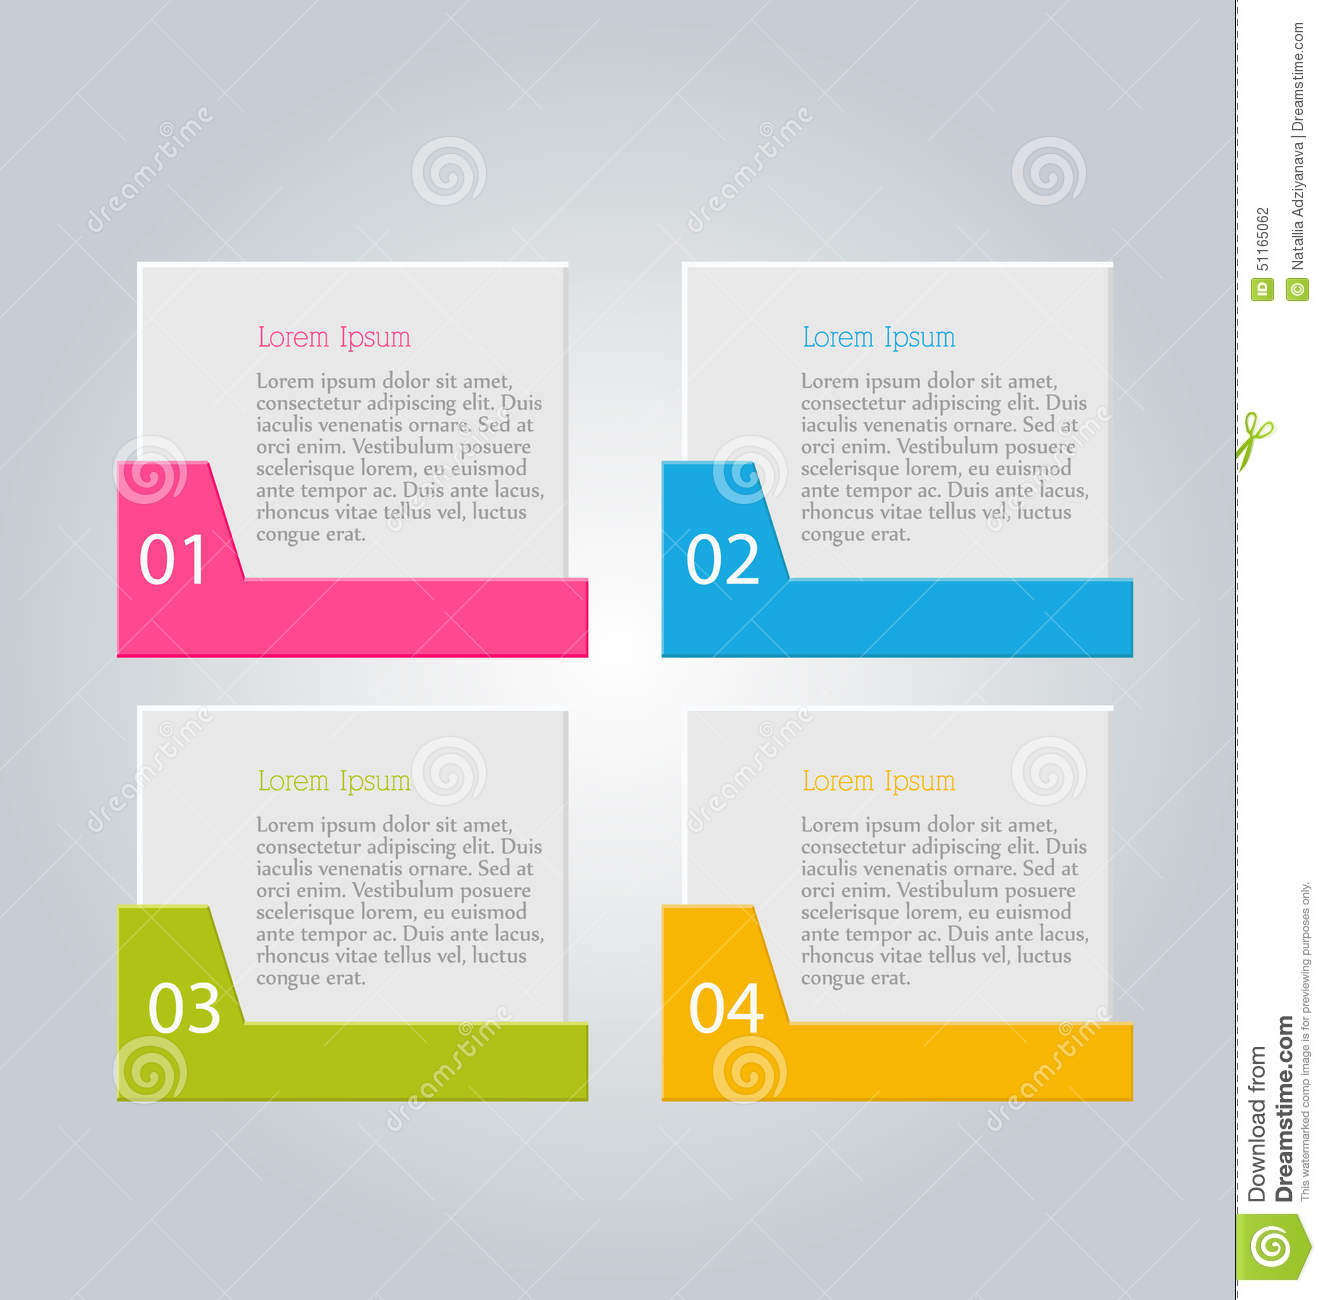 business infographic template for presentation, education, web, Presentation templates